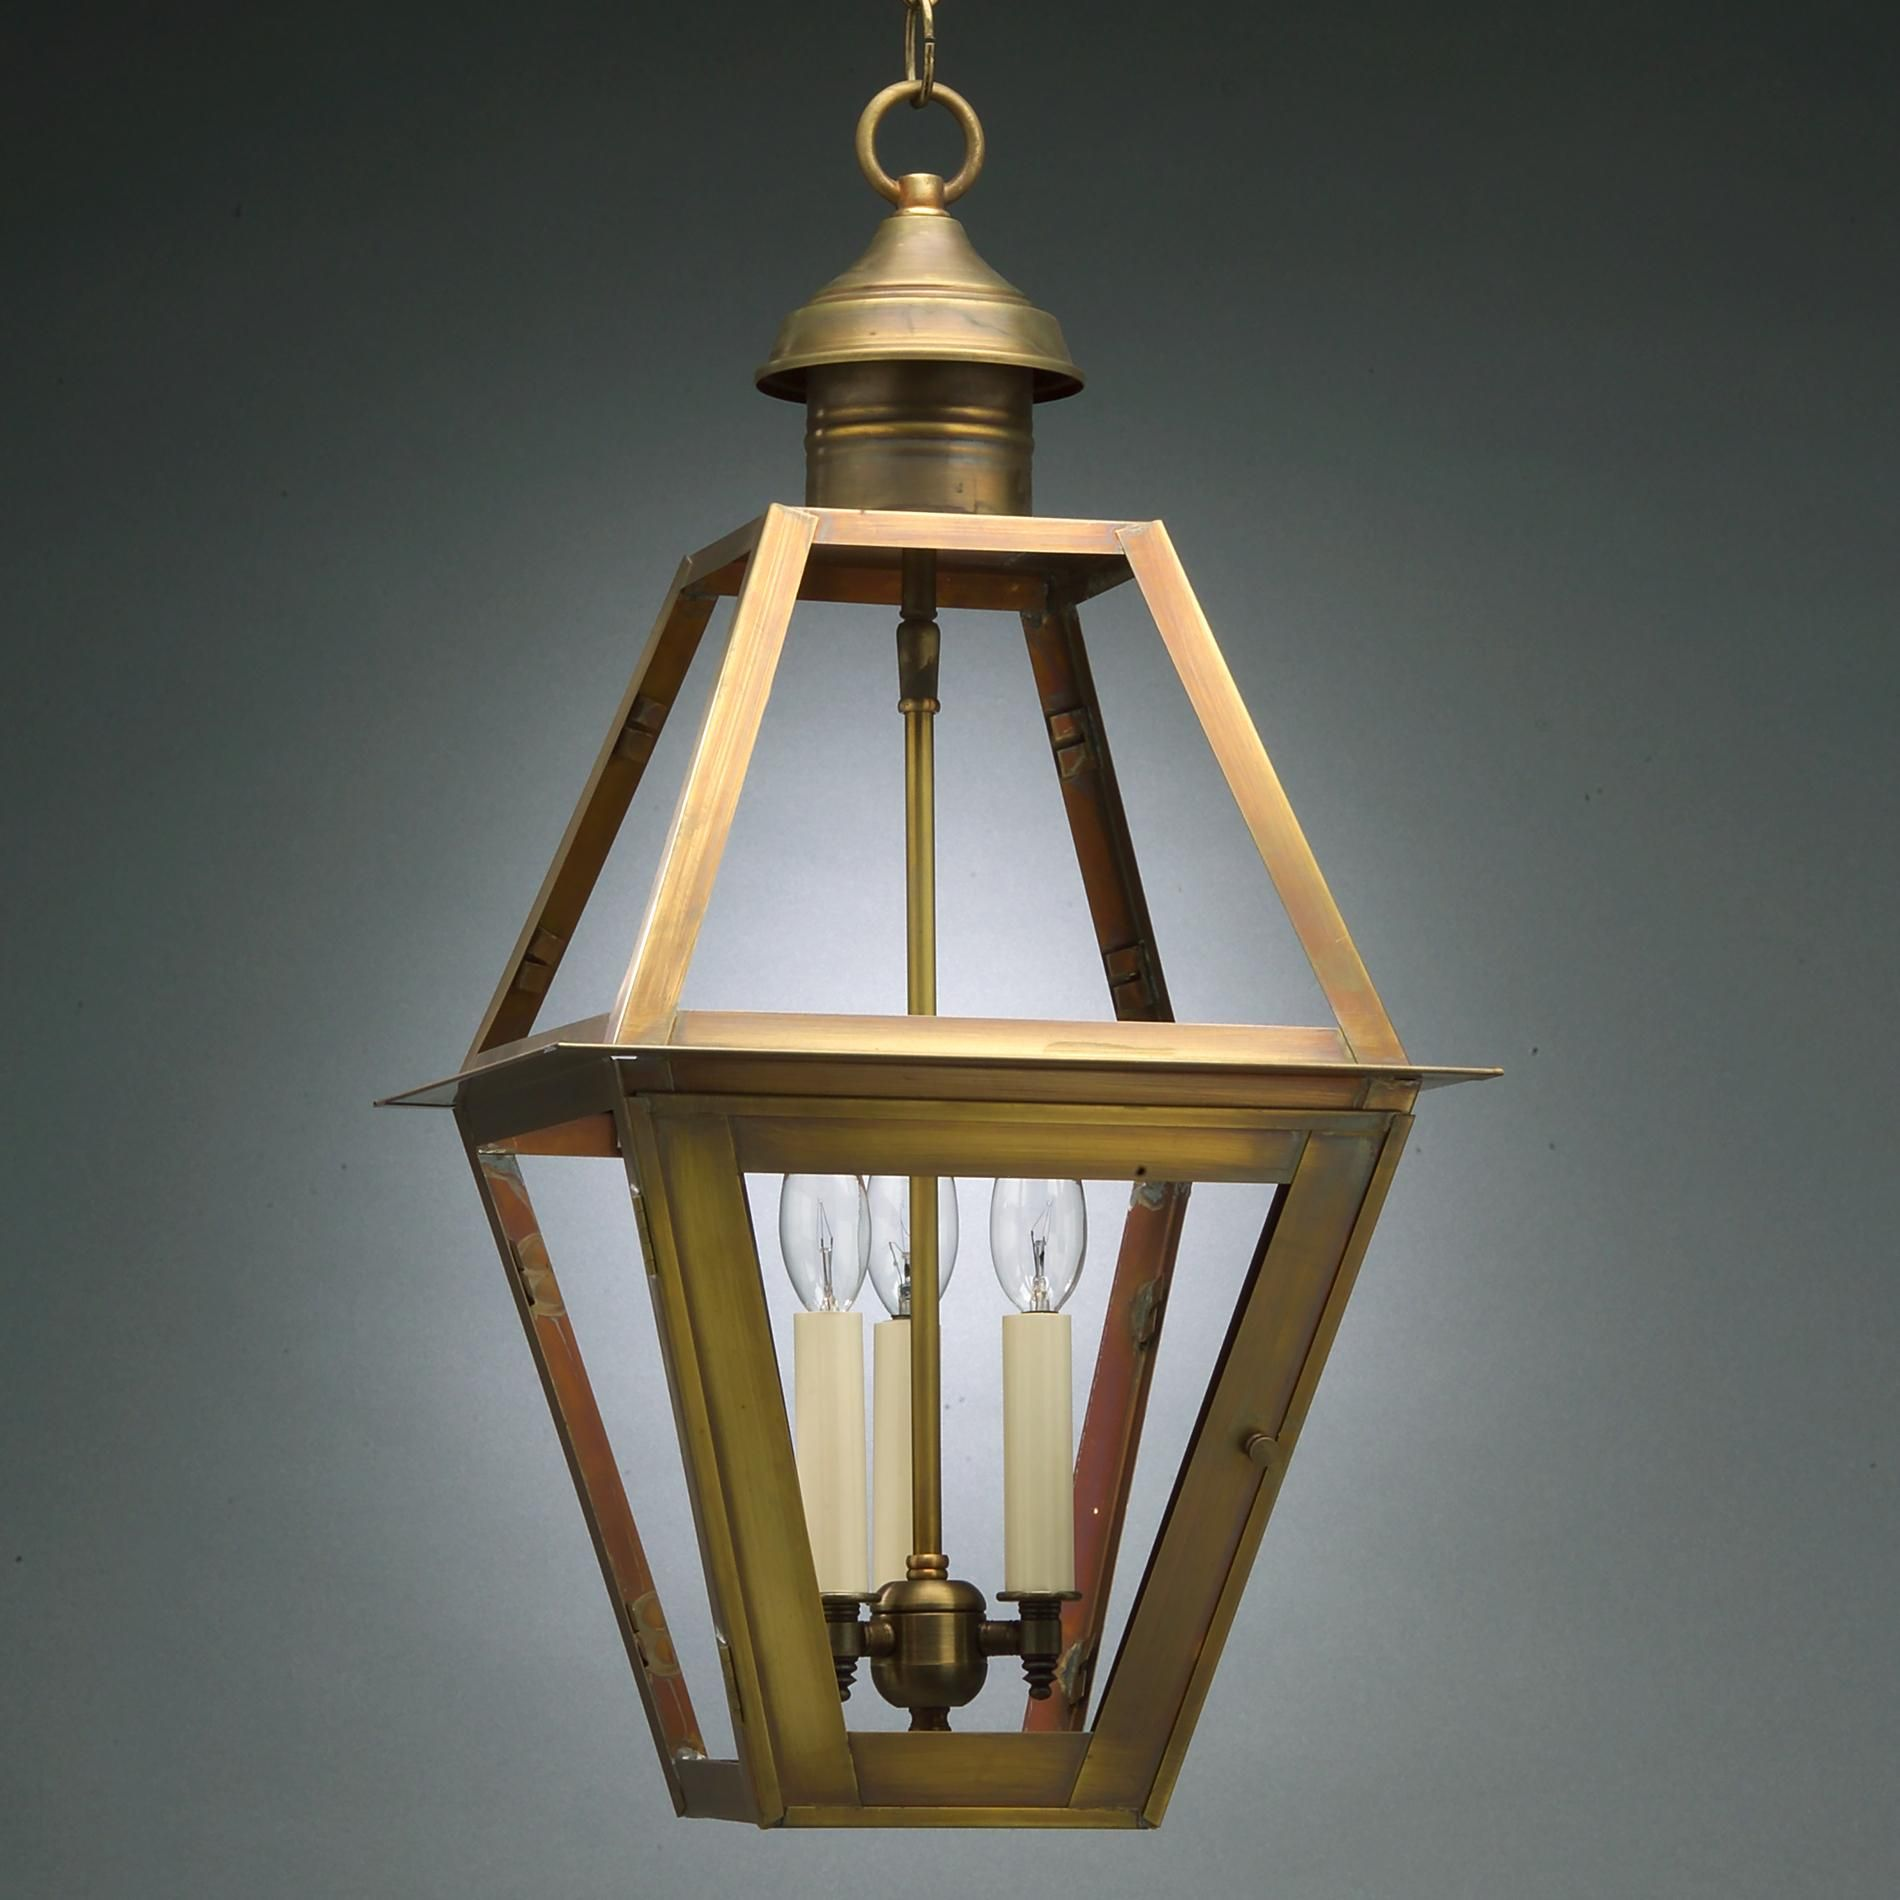 Restoration Warehouse Boston Hanging Lantern porch - available different finishes